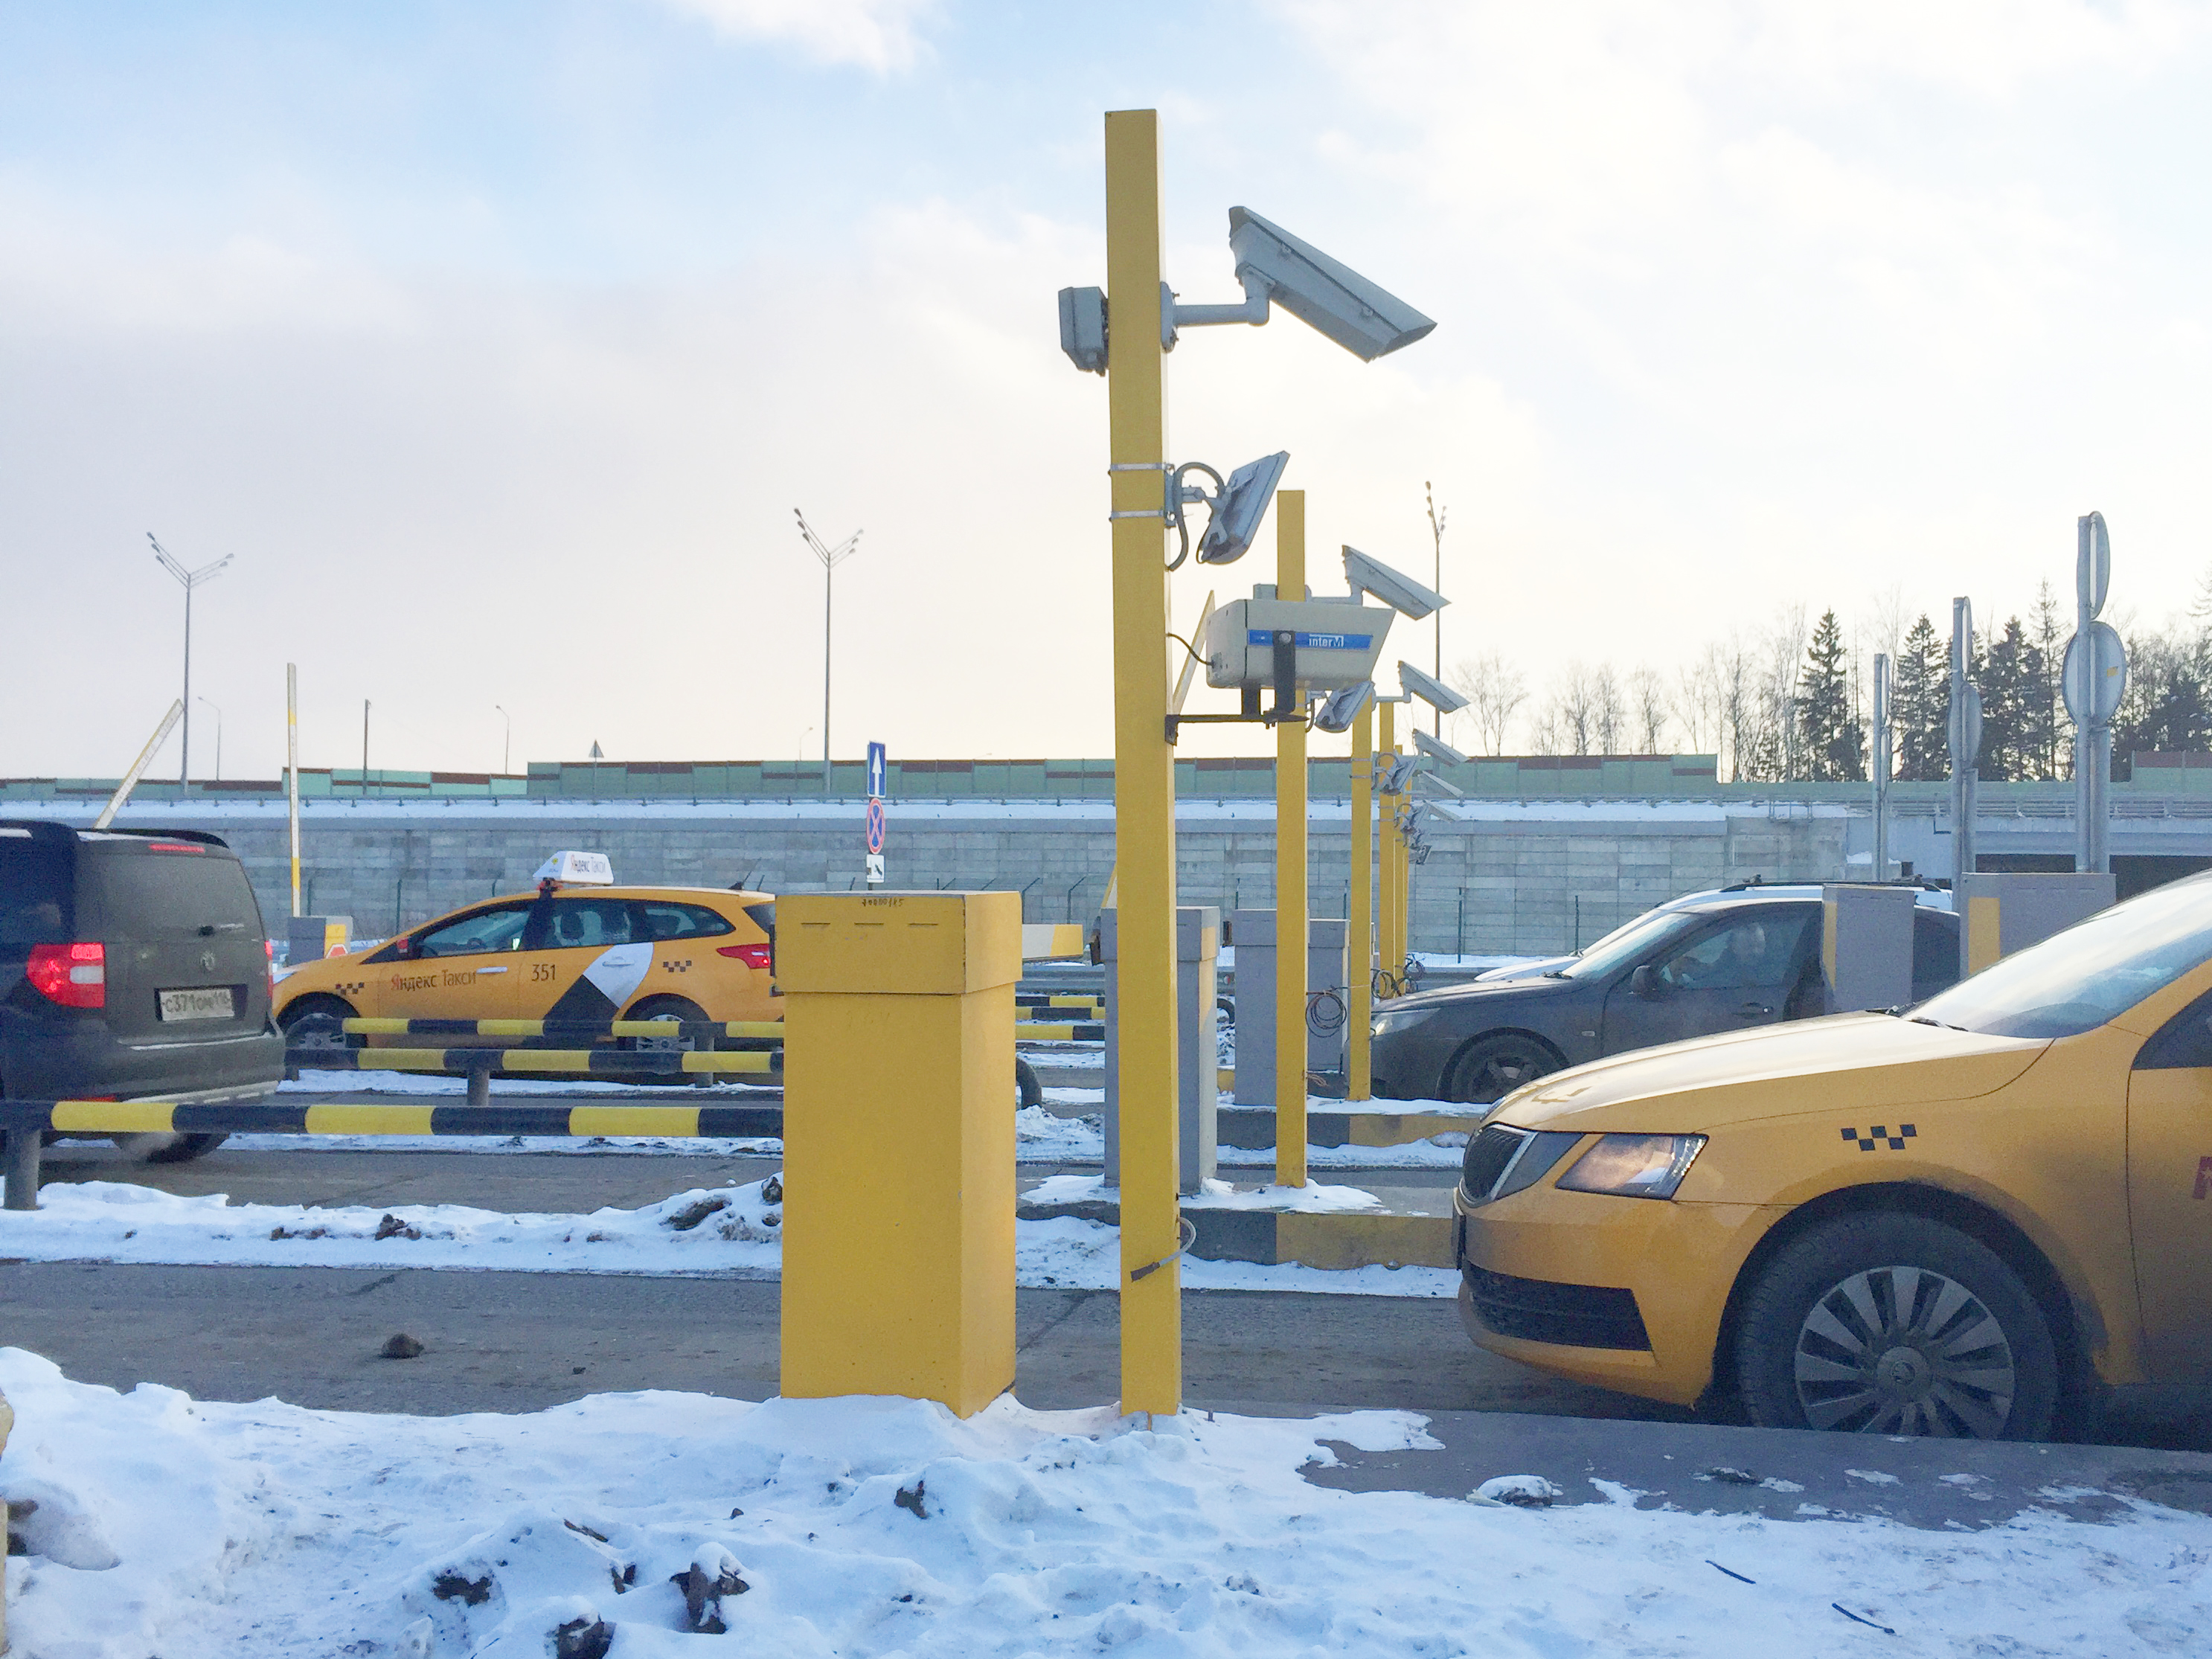 Nedap enables Yandex Taxi services at Moscow airport - Nedap